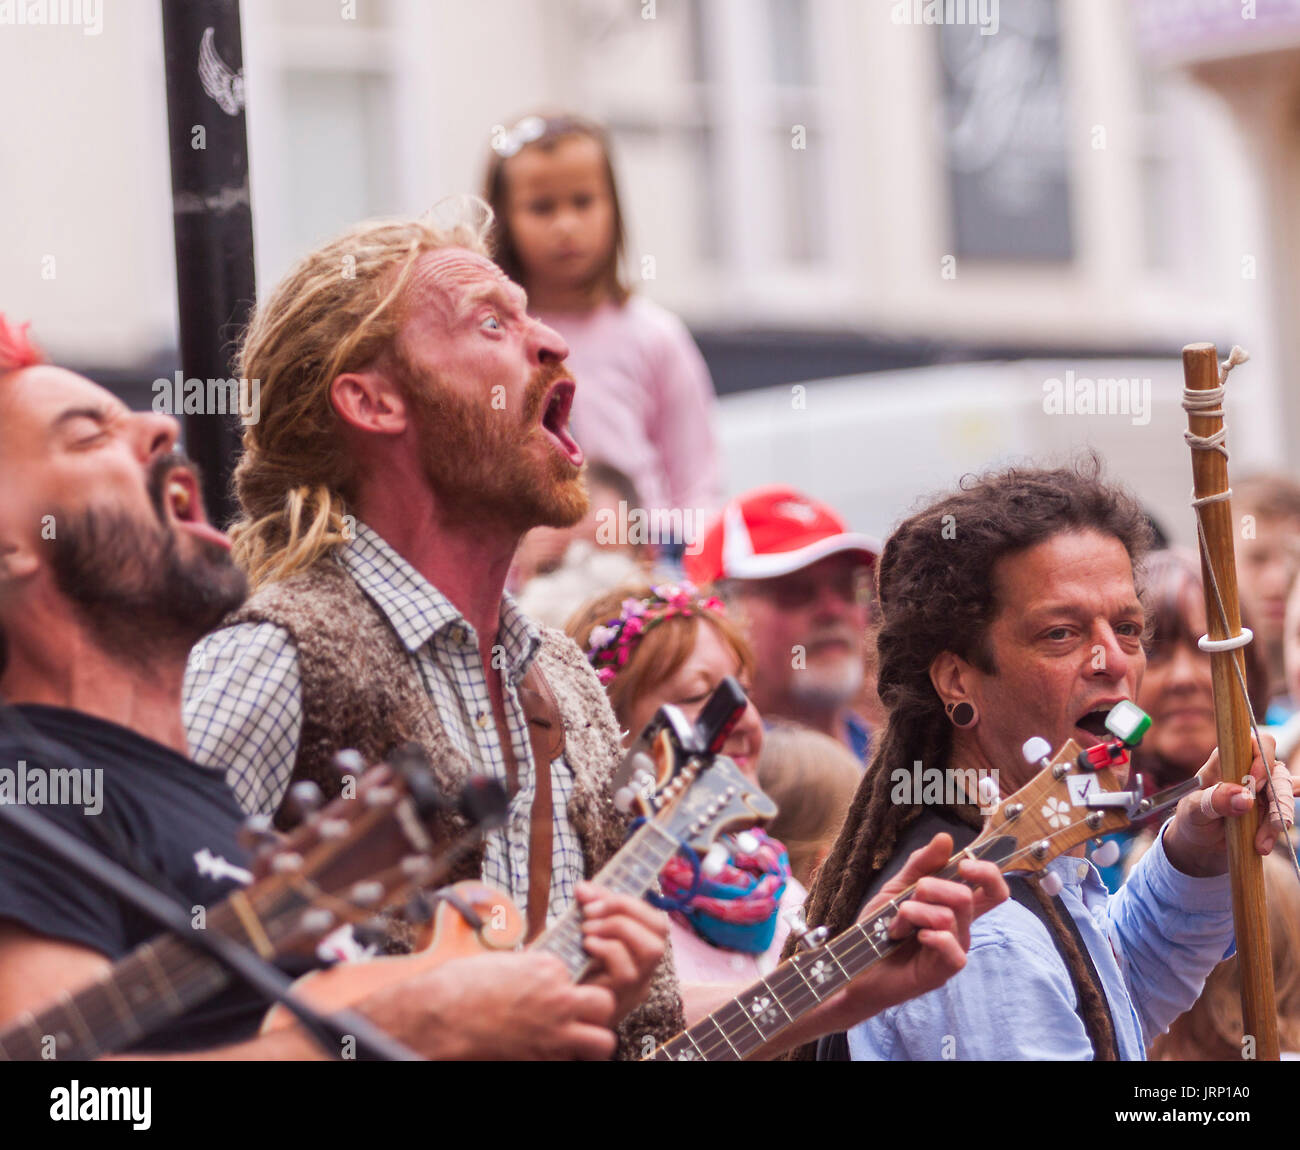 Sidmouth, UK. 6th August, 2017. Street band Phat Bollard perform in Sidmouth Market Square at the town's annual Stock Photo